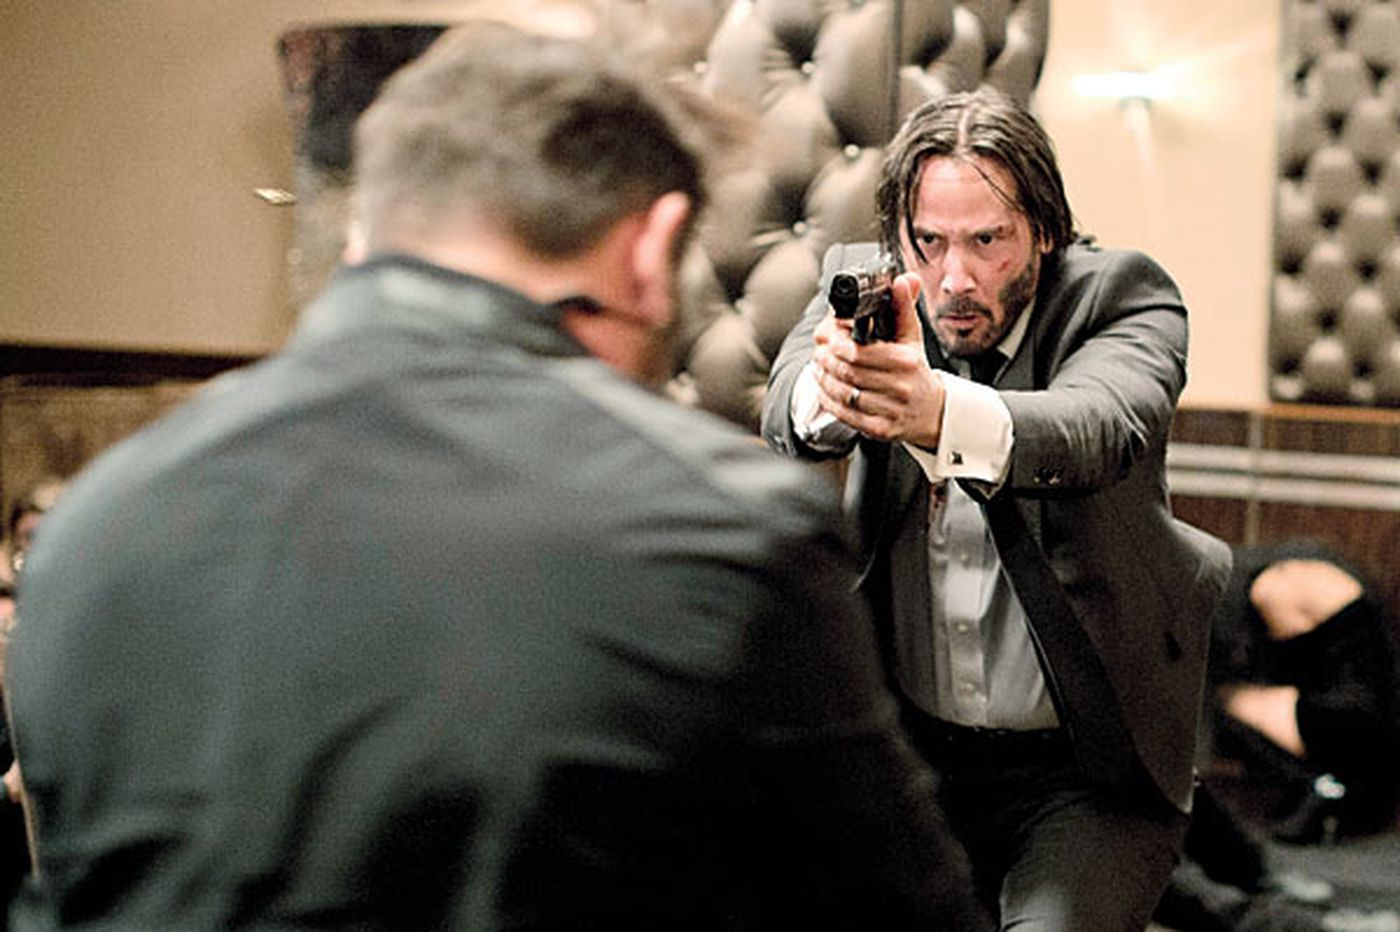 'John Wick': The big guns come out in breathtaking action